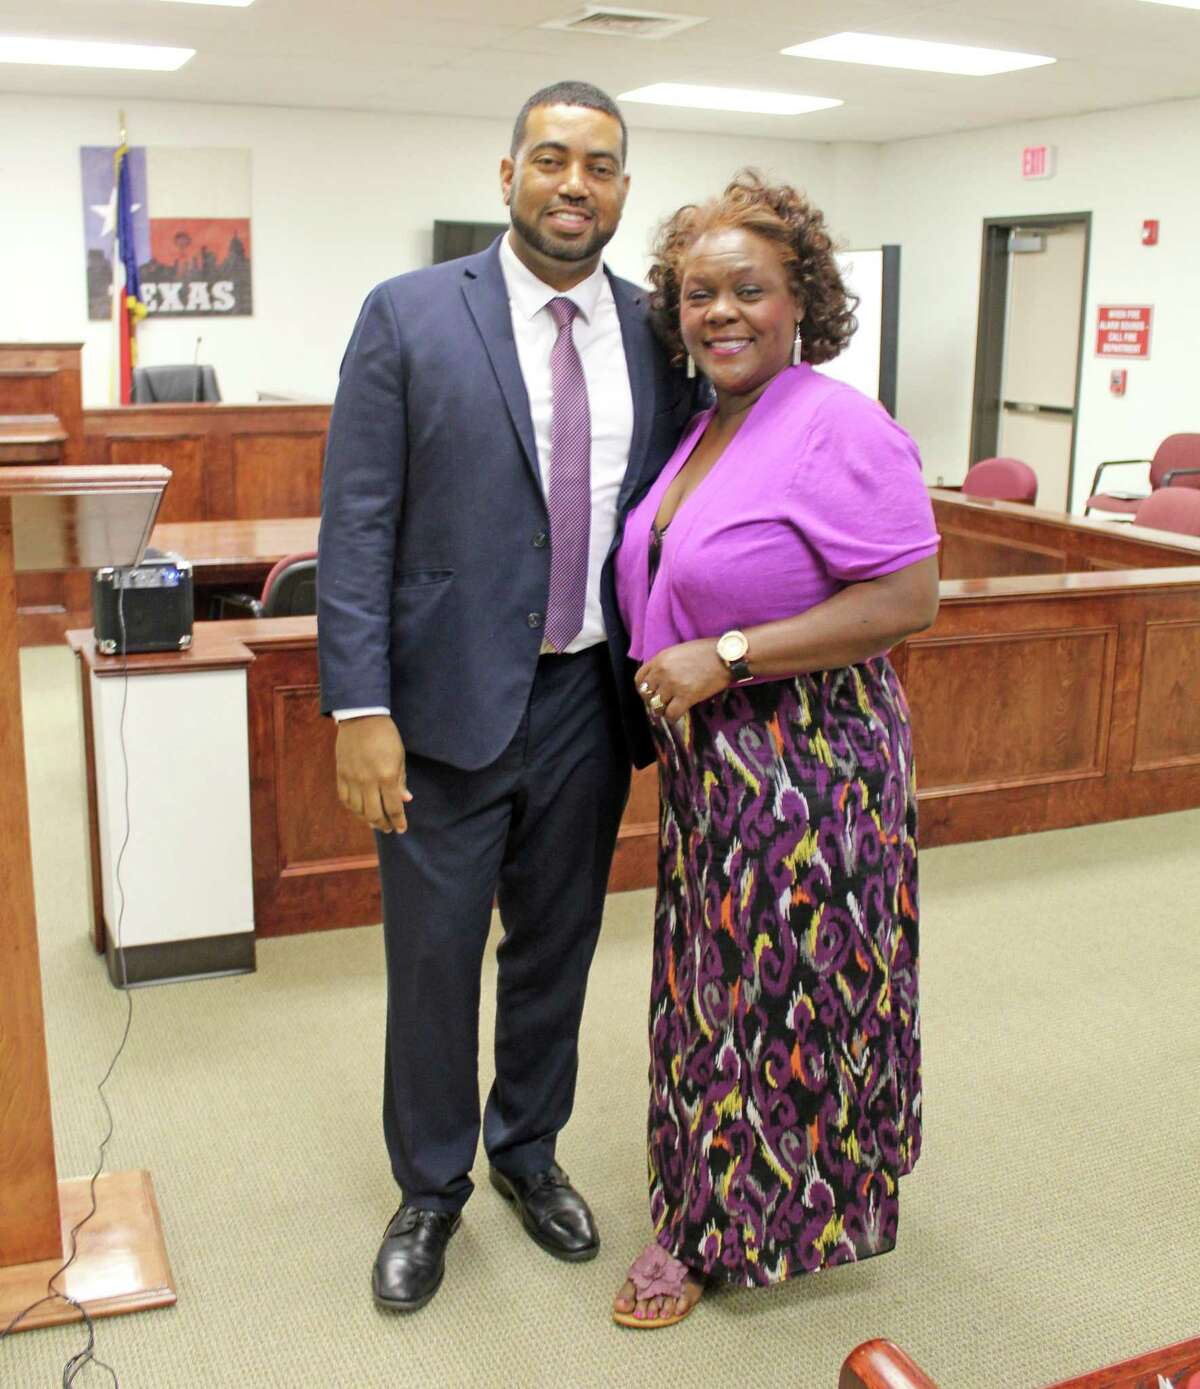 Fort Bend County District Attorney Brian Middleton (left) and Cynthia Ginyard, chair of Fort Bend County Democratic Party (right) were among the guests at a Missouri City Town Hall hosted by Senator Borris Miles on Wednesday, July 10.